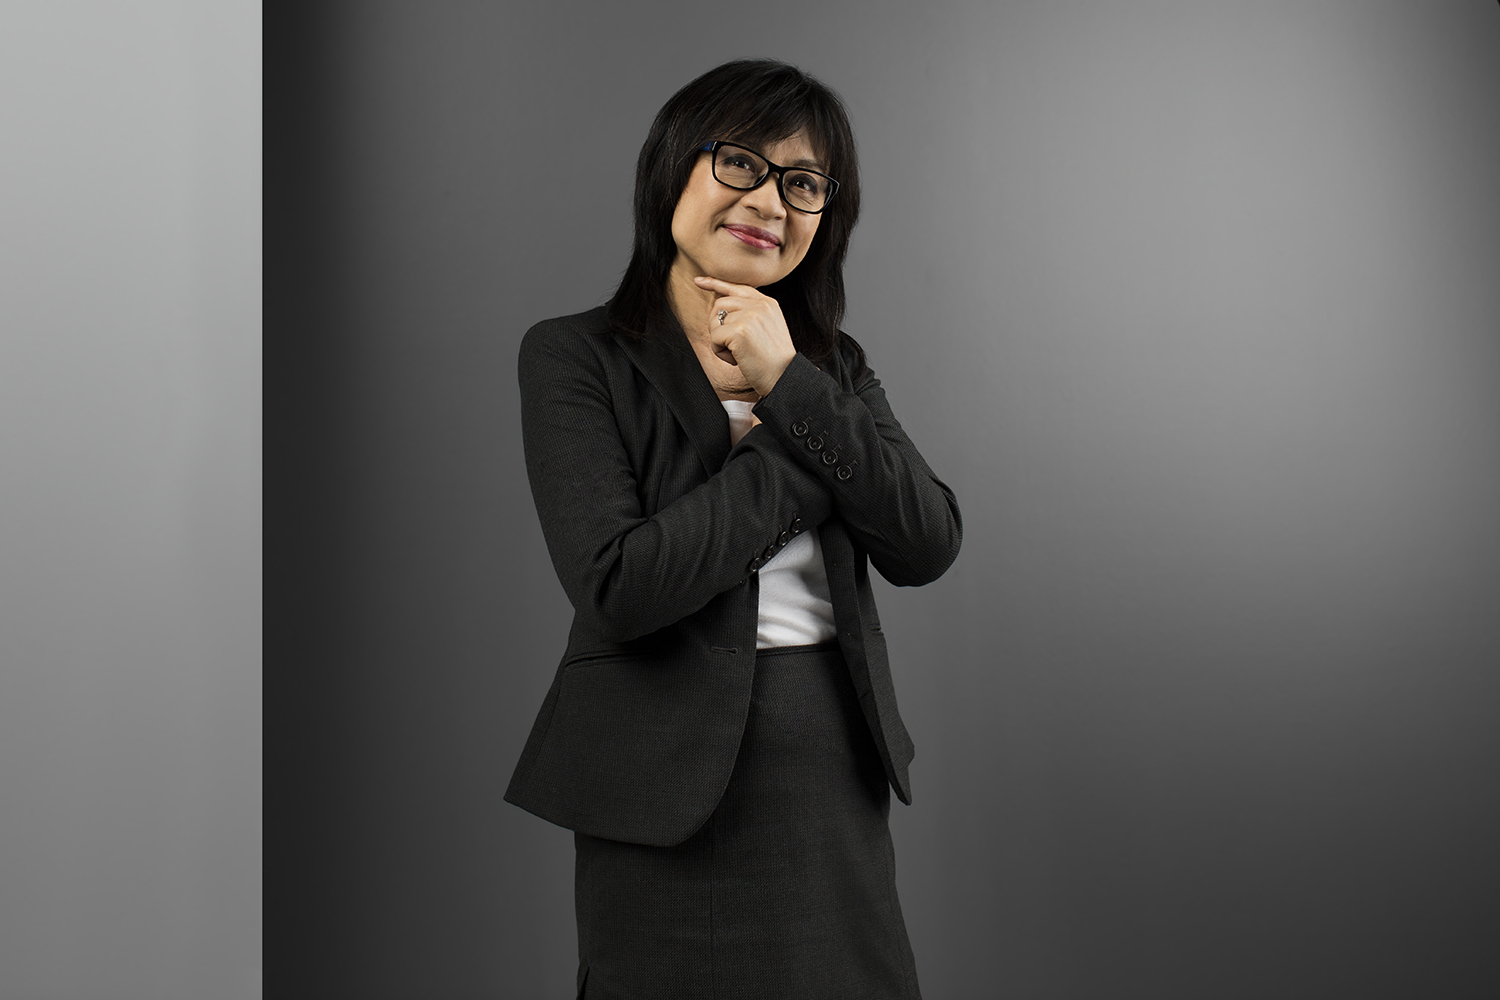 Helen Liu - Chief Financial Officer at OneVentures, leading Australian Venture Capital firm